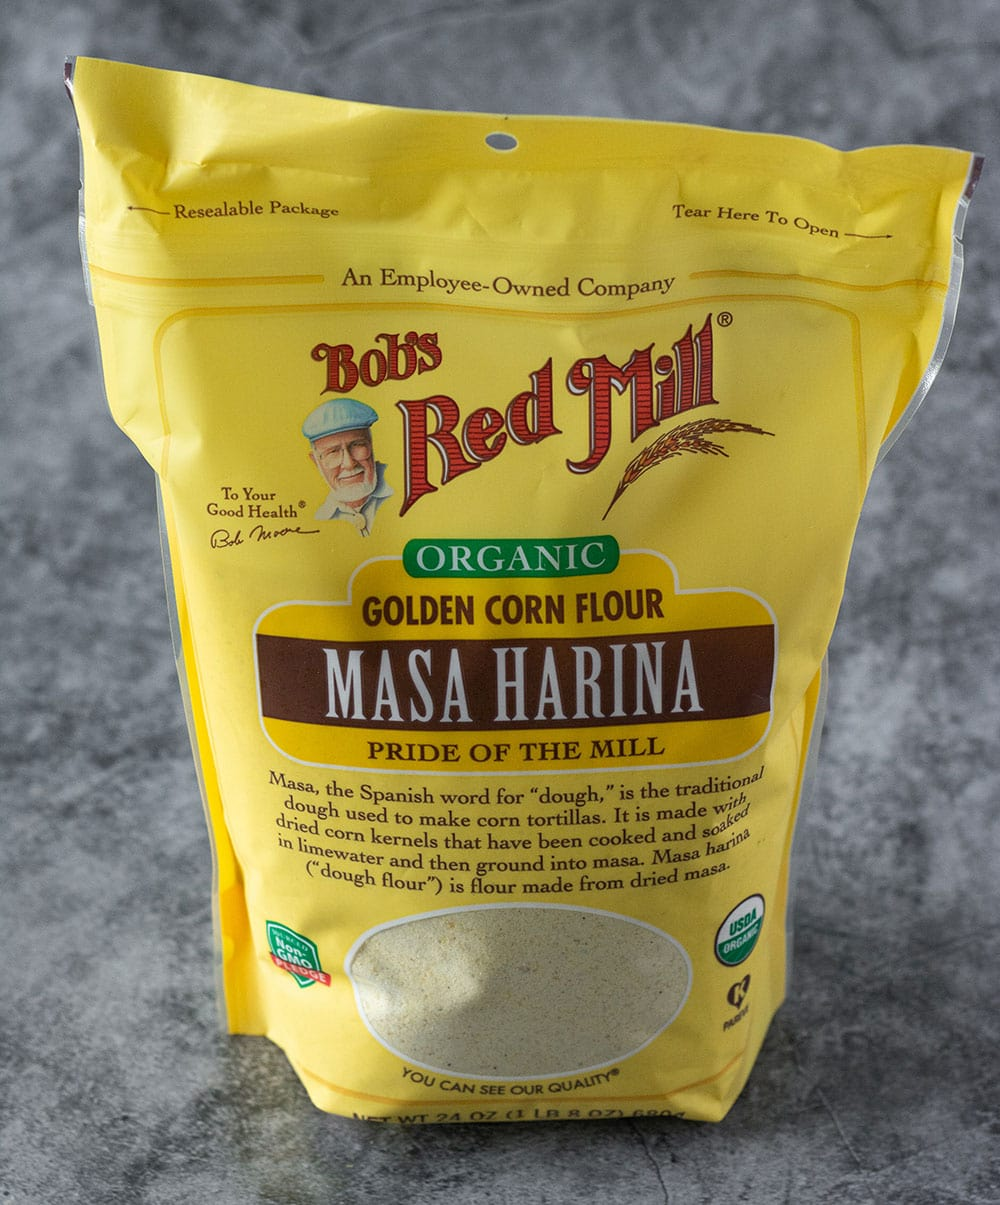 masa harina for making pupusa. bob's red mills brand